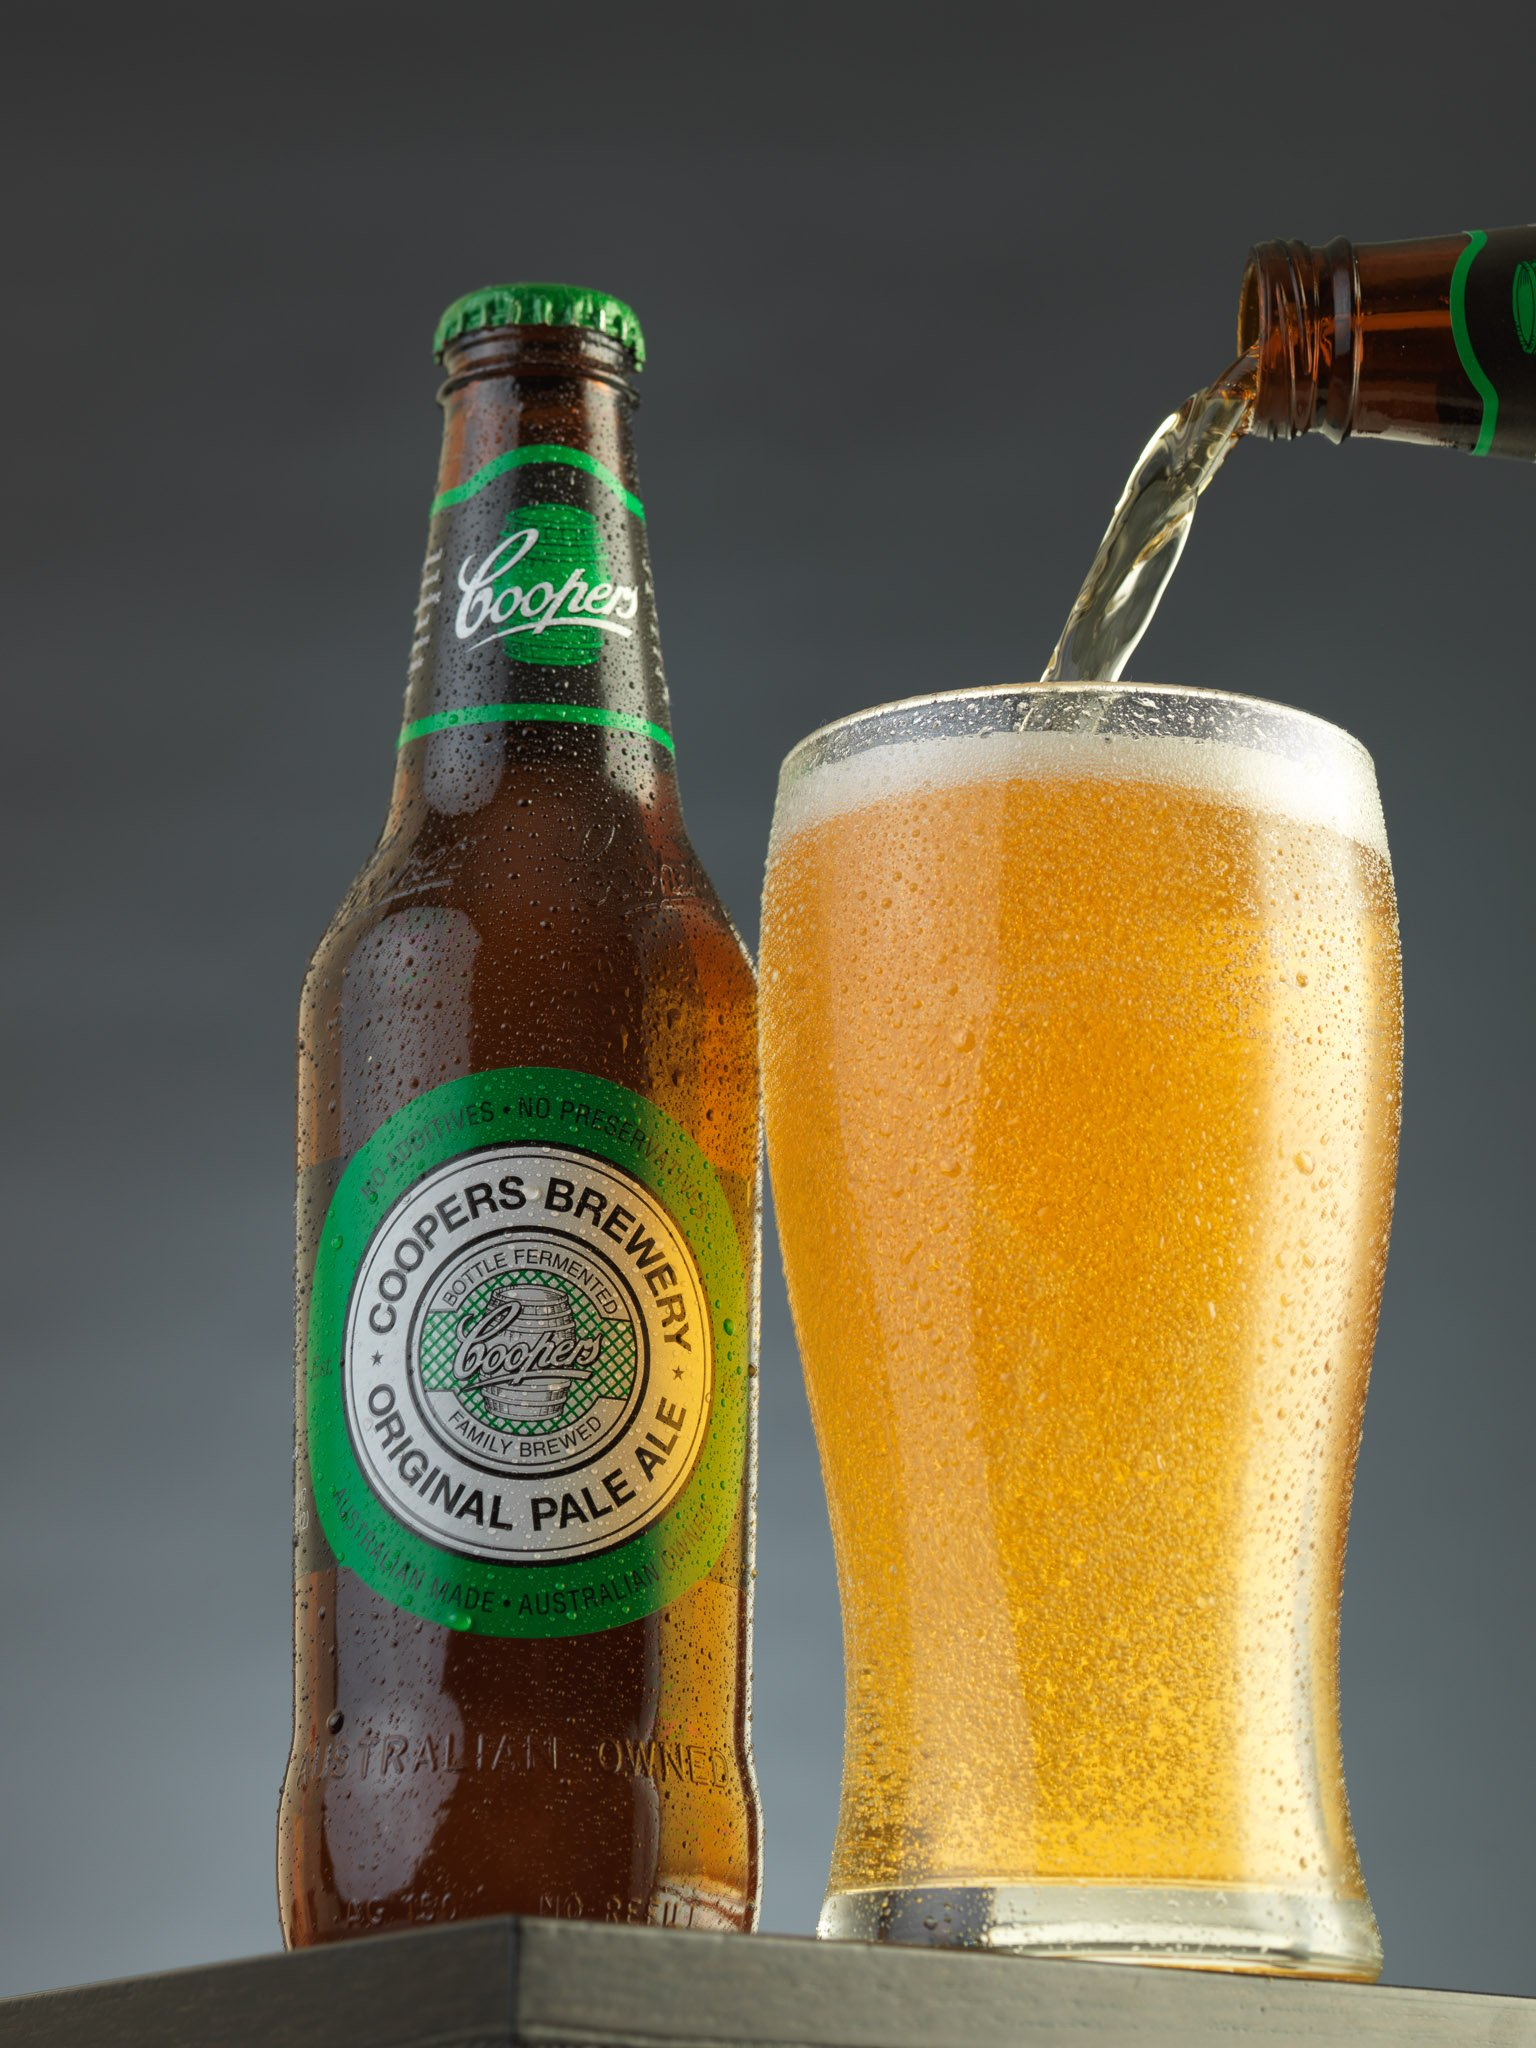 Glass of Coopers Pale Ale being poured, with a full bottle beside